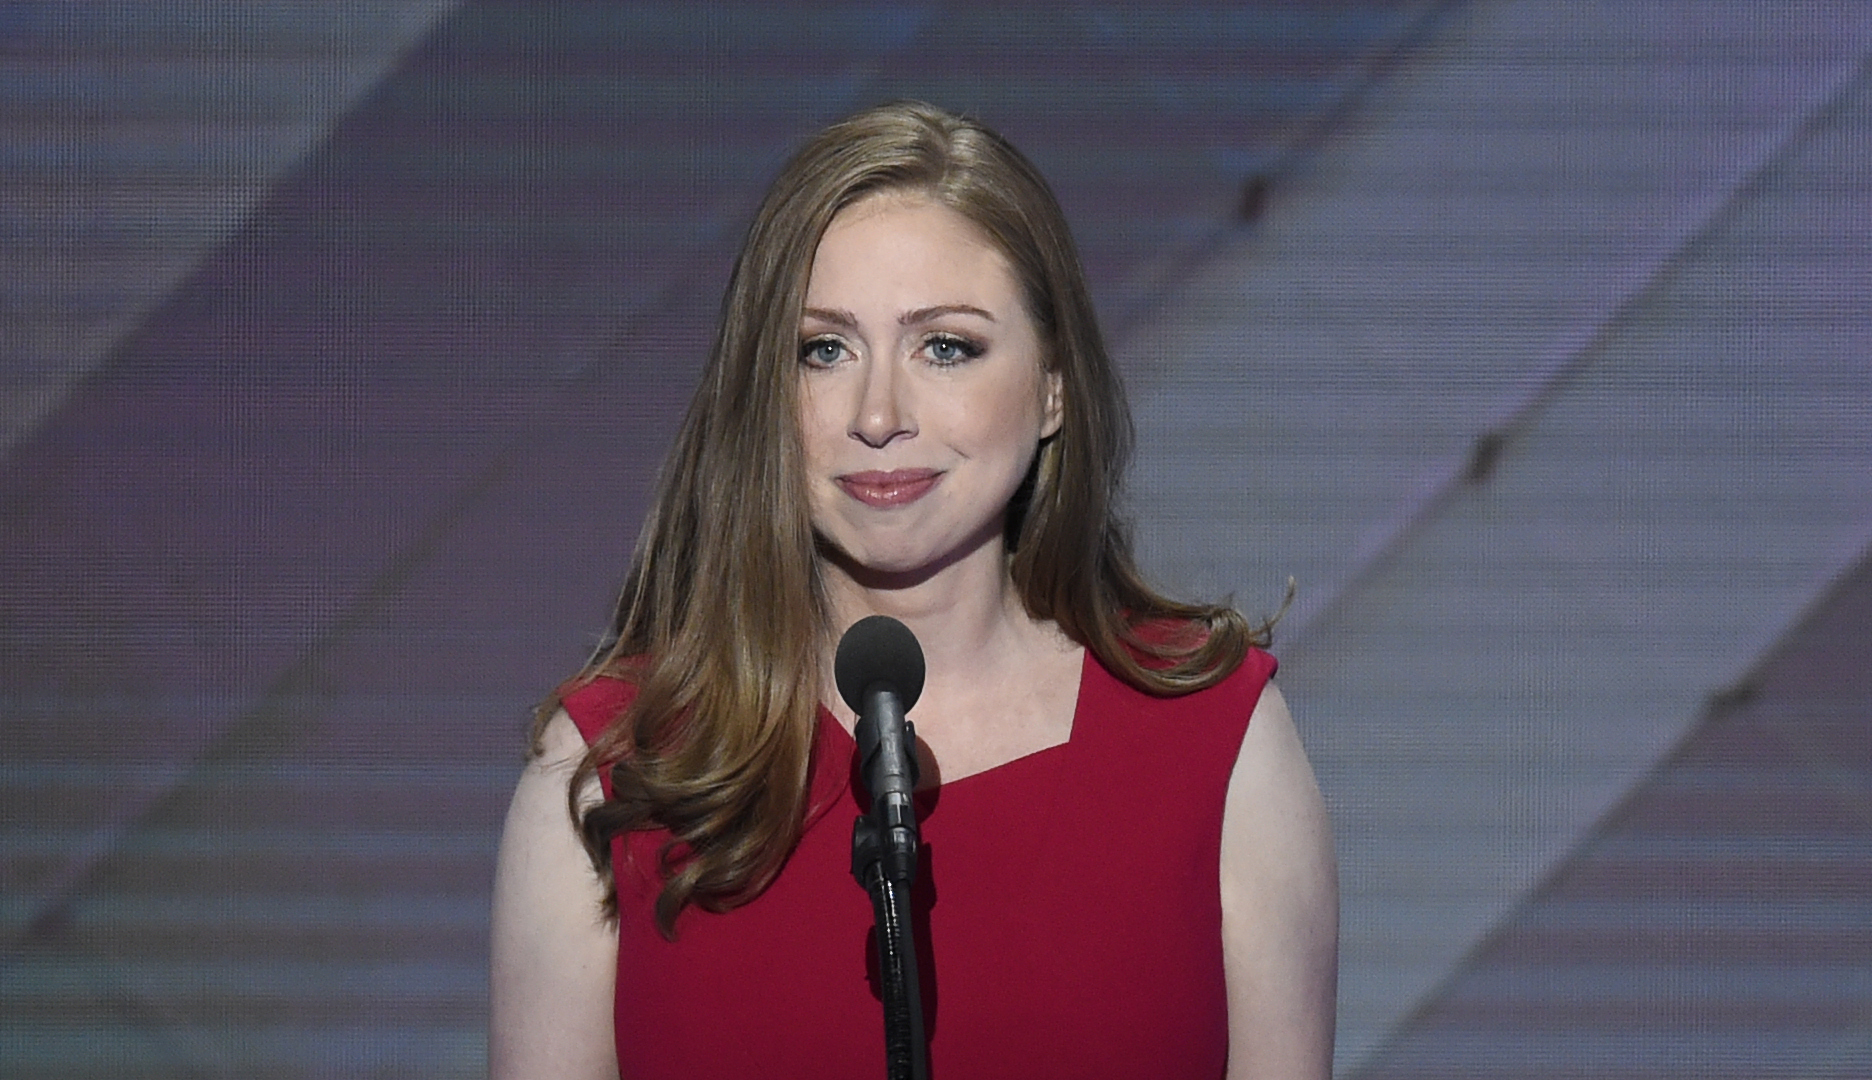 Students confront Chelsea Clinton over anti-immigrant trope